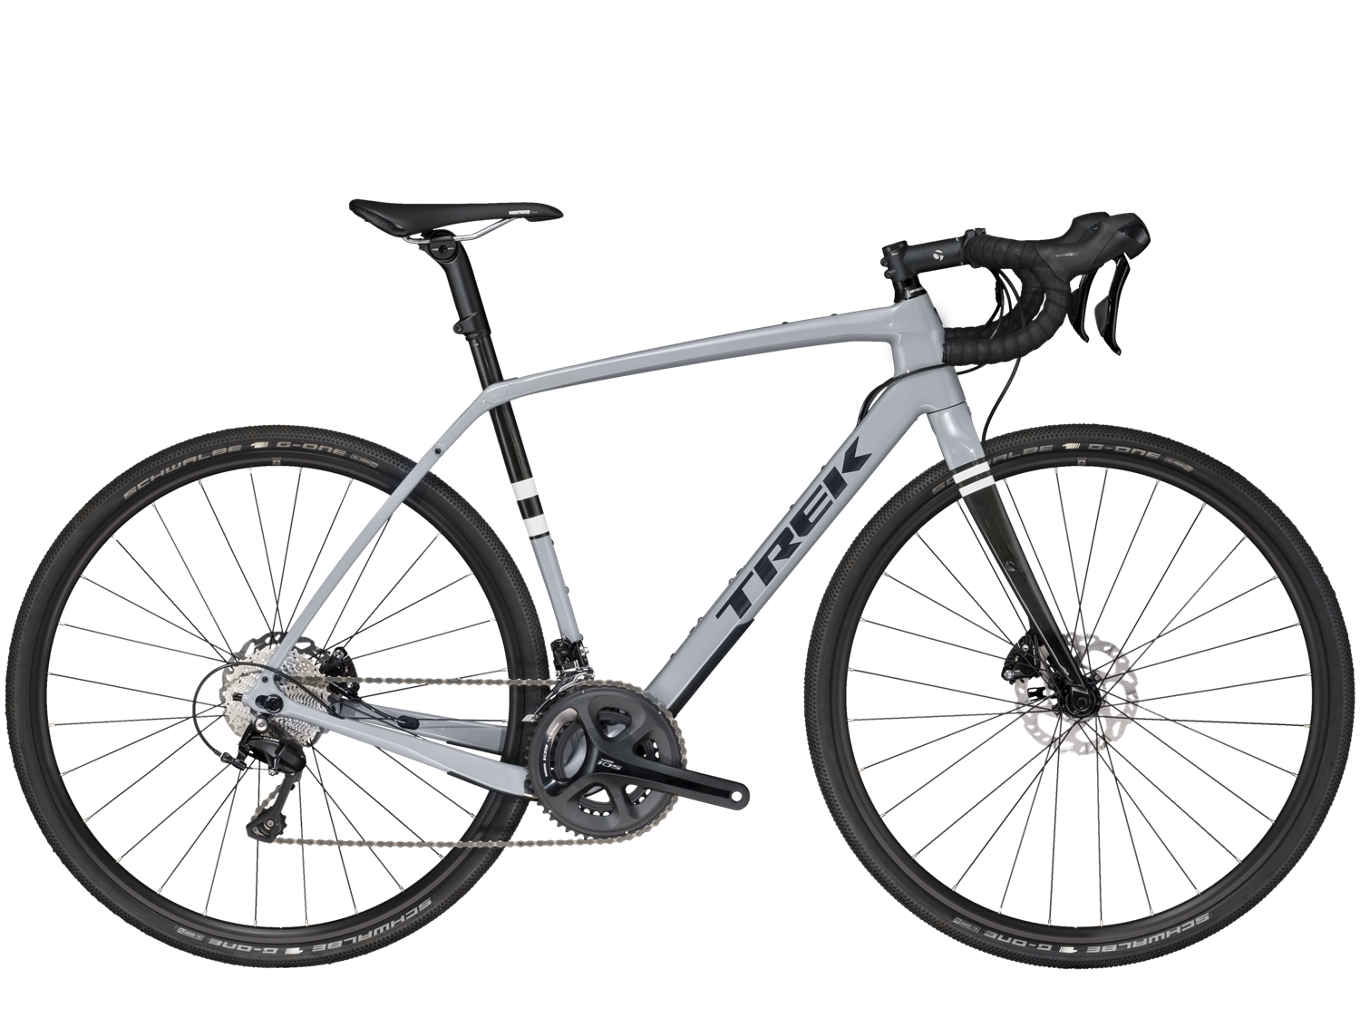 2019 Trek Checkpoint SL 5 Carbon Mens Gravel bike in Grey